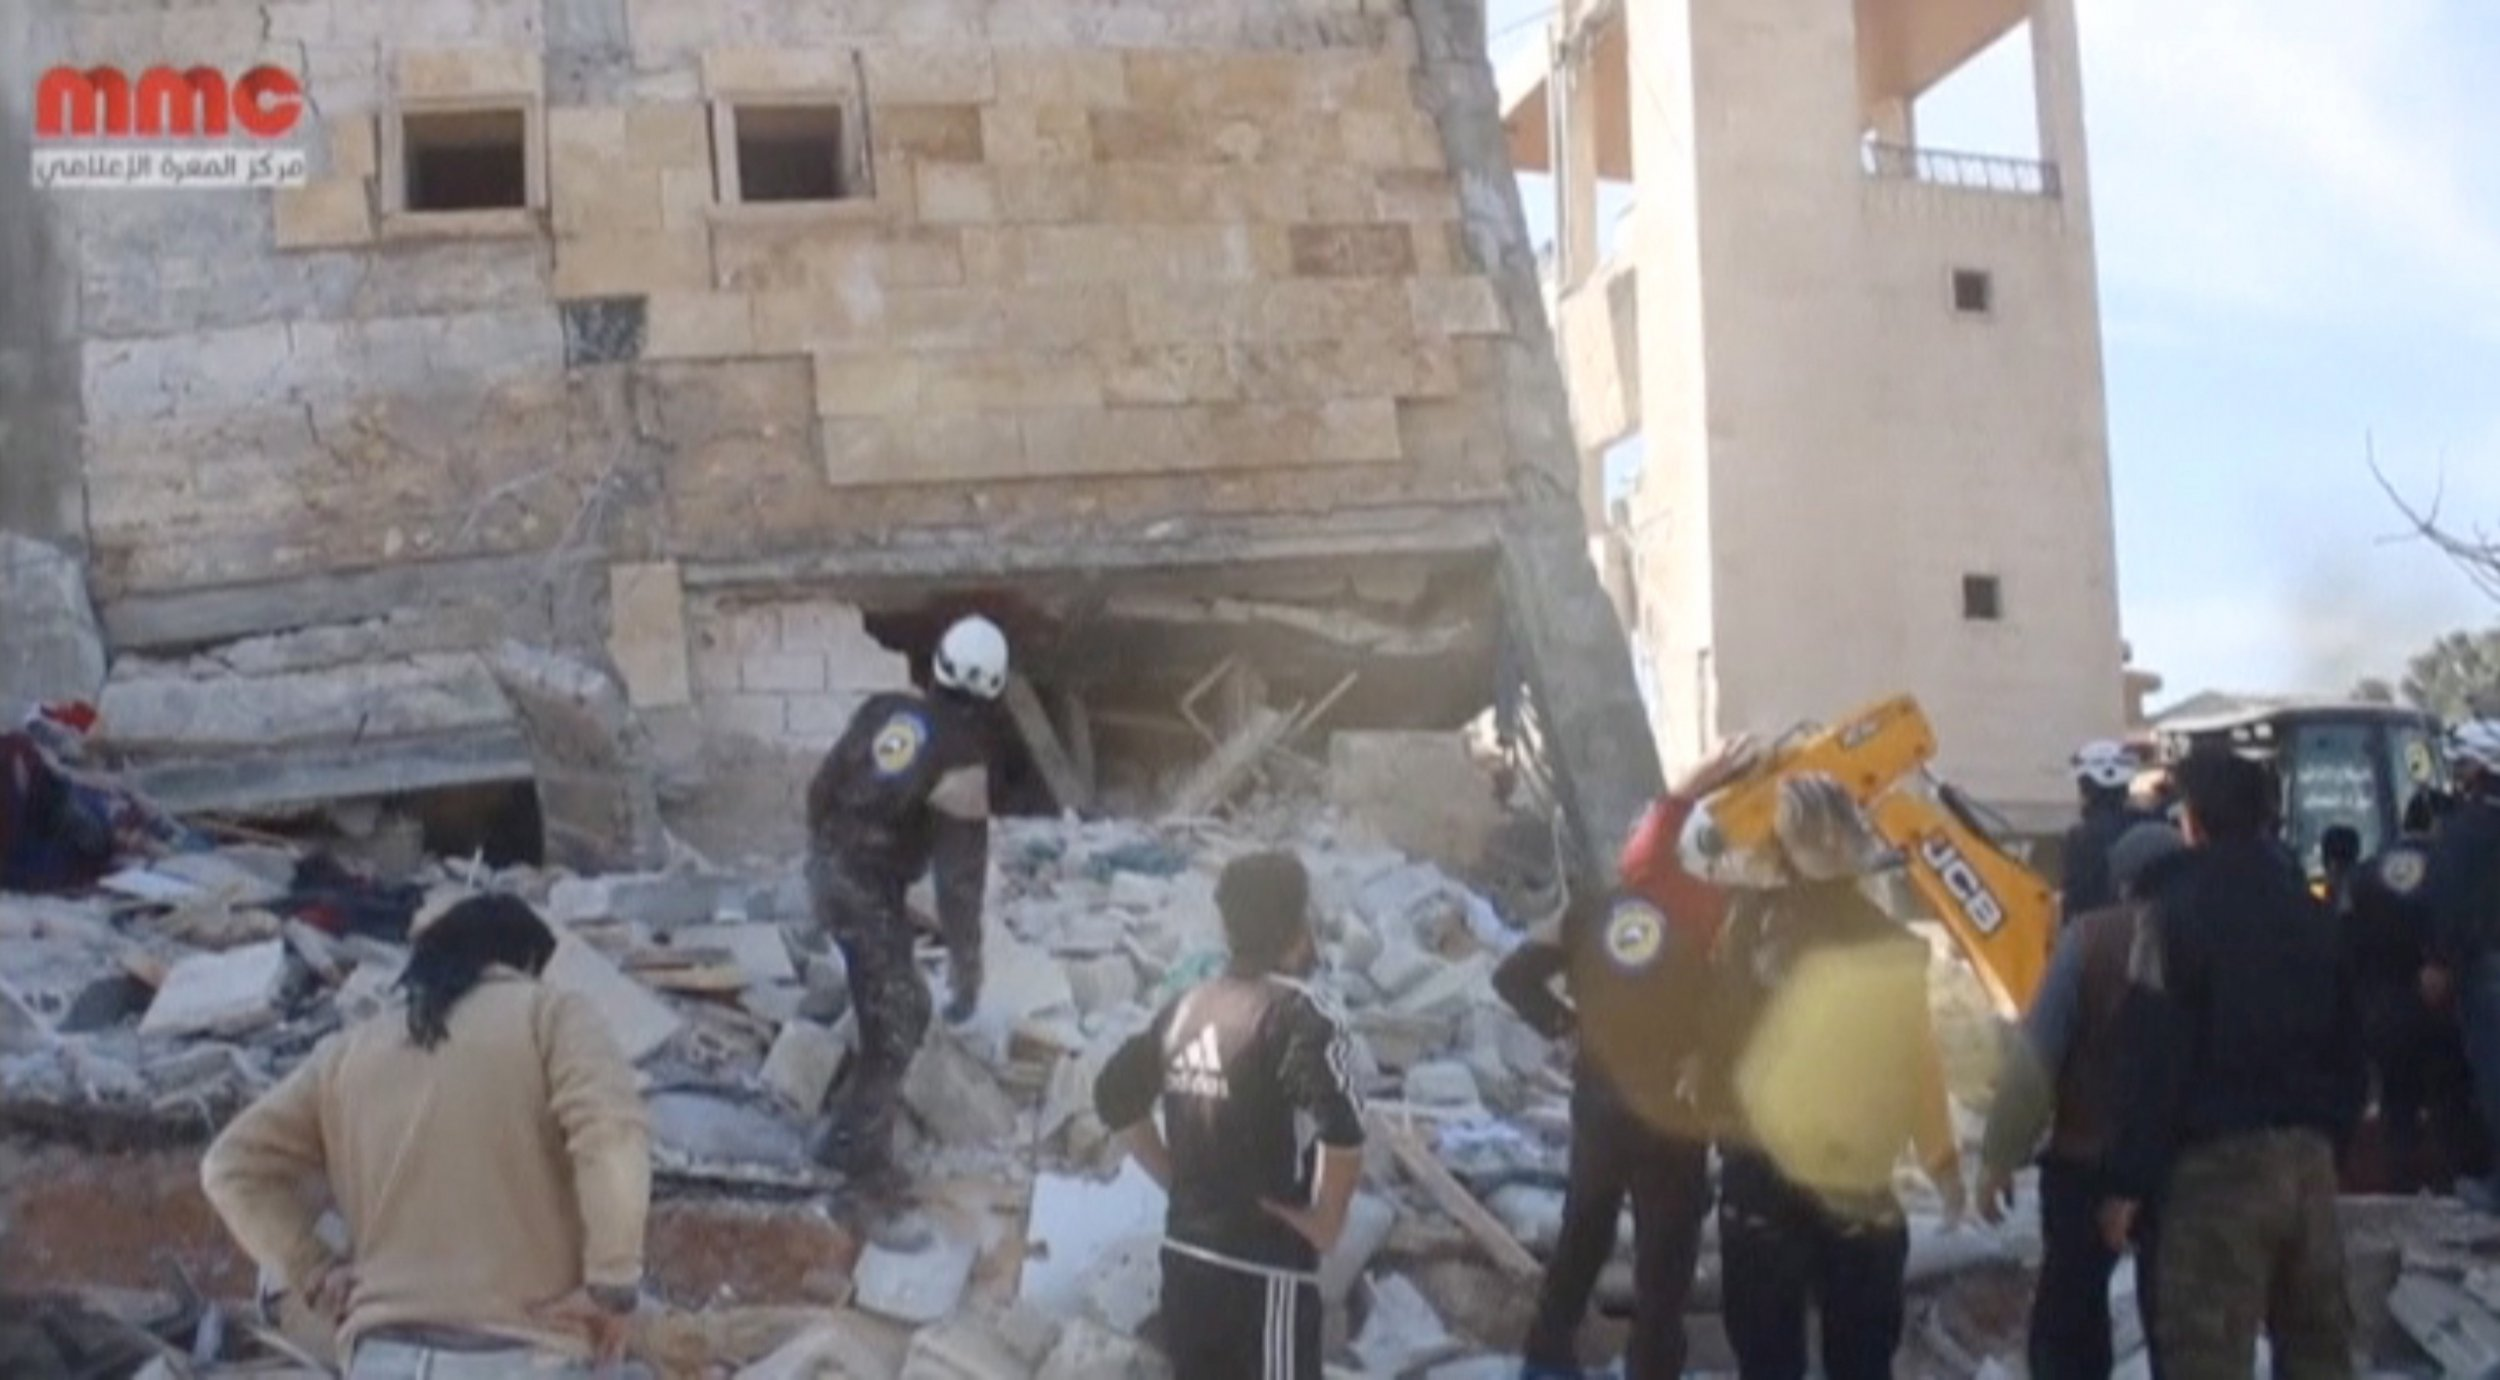 People gather near an MSF-supported hospital in Idlib, which was reportedly hit by airstrikes.